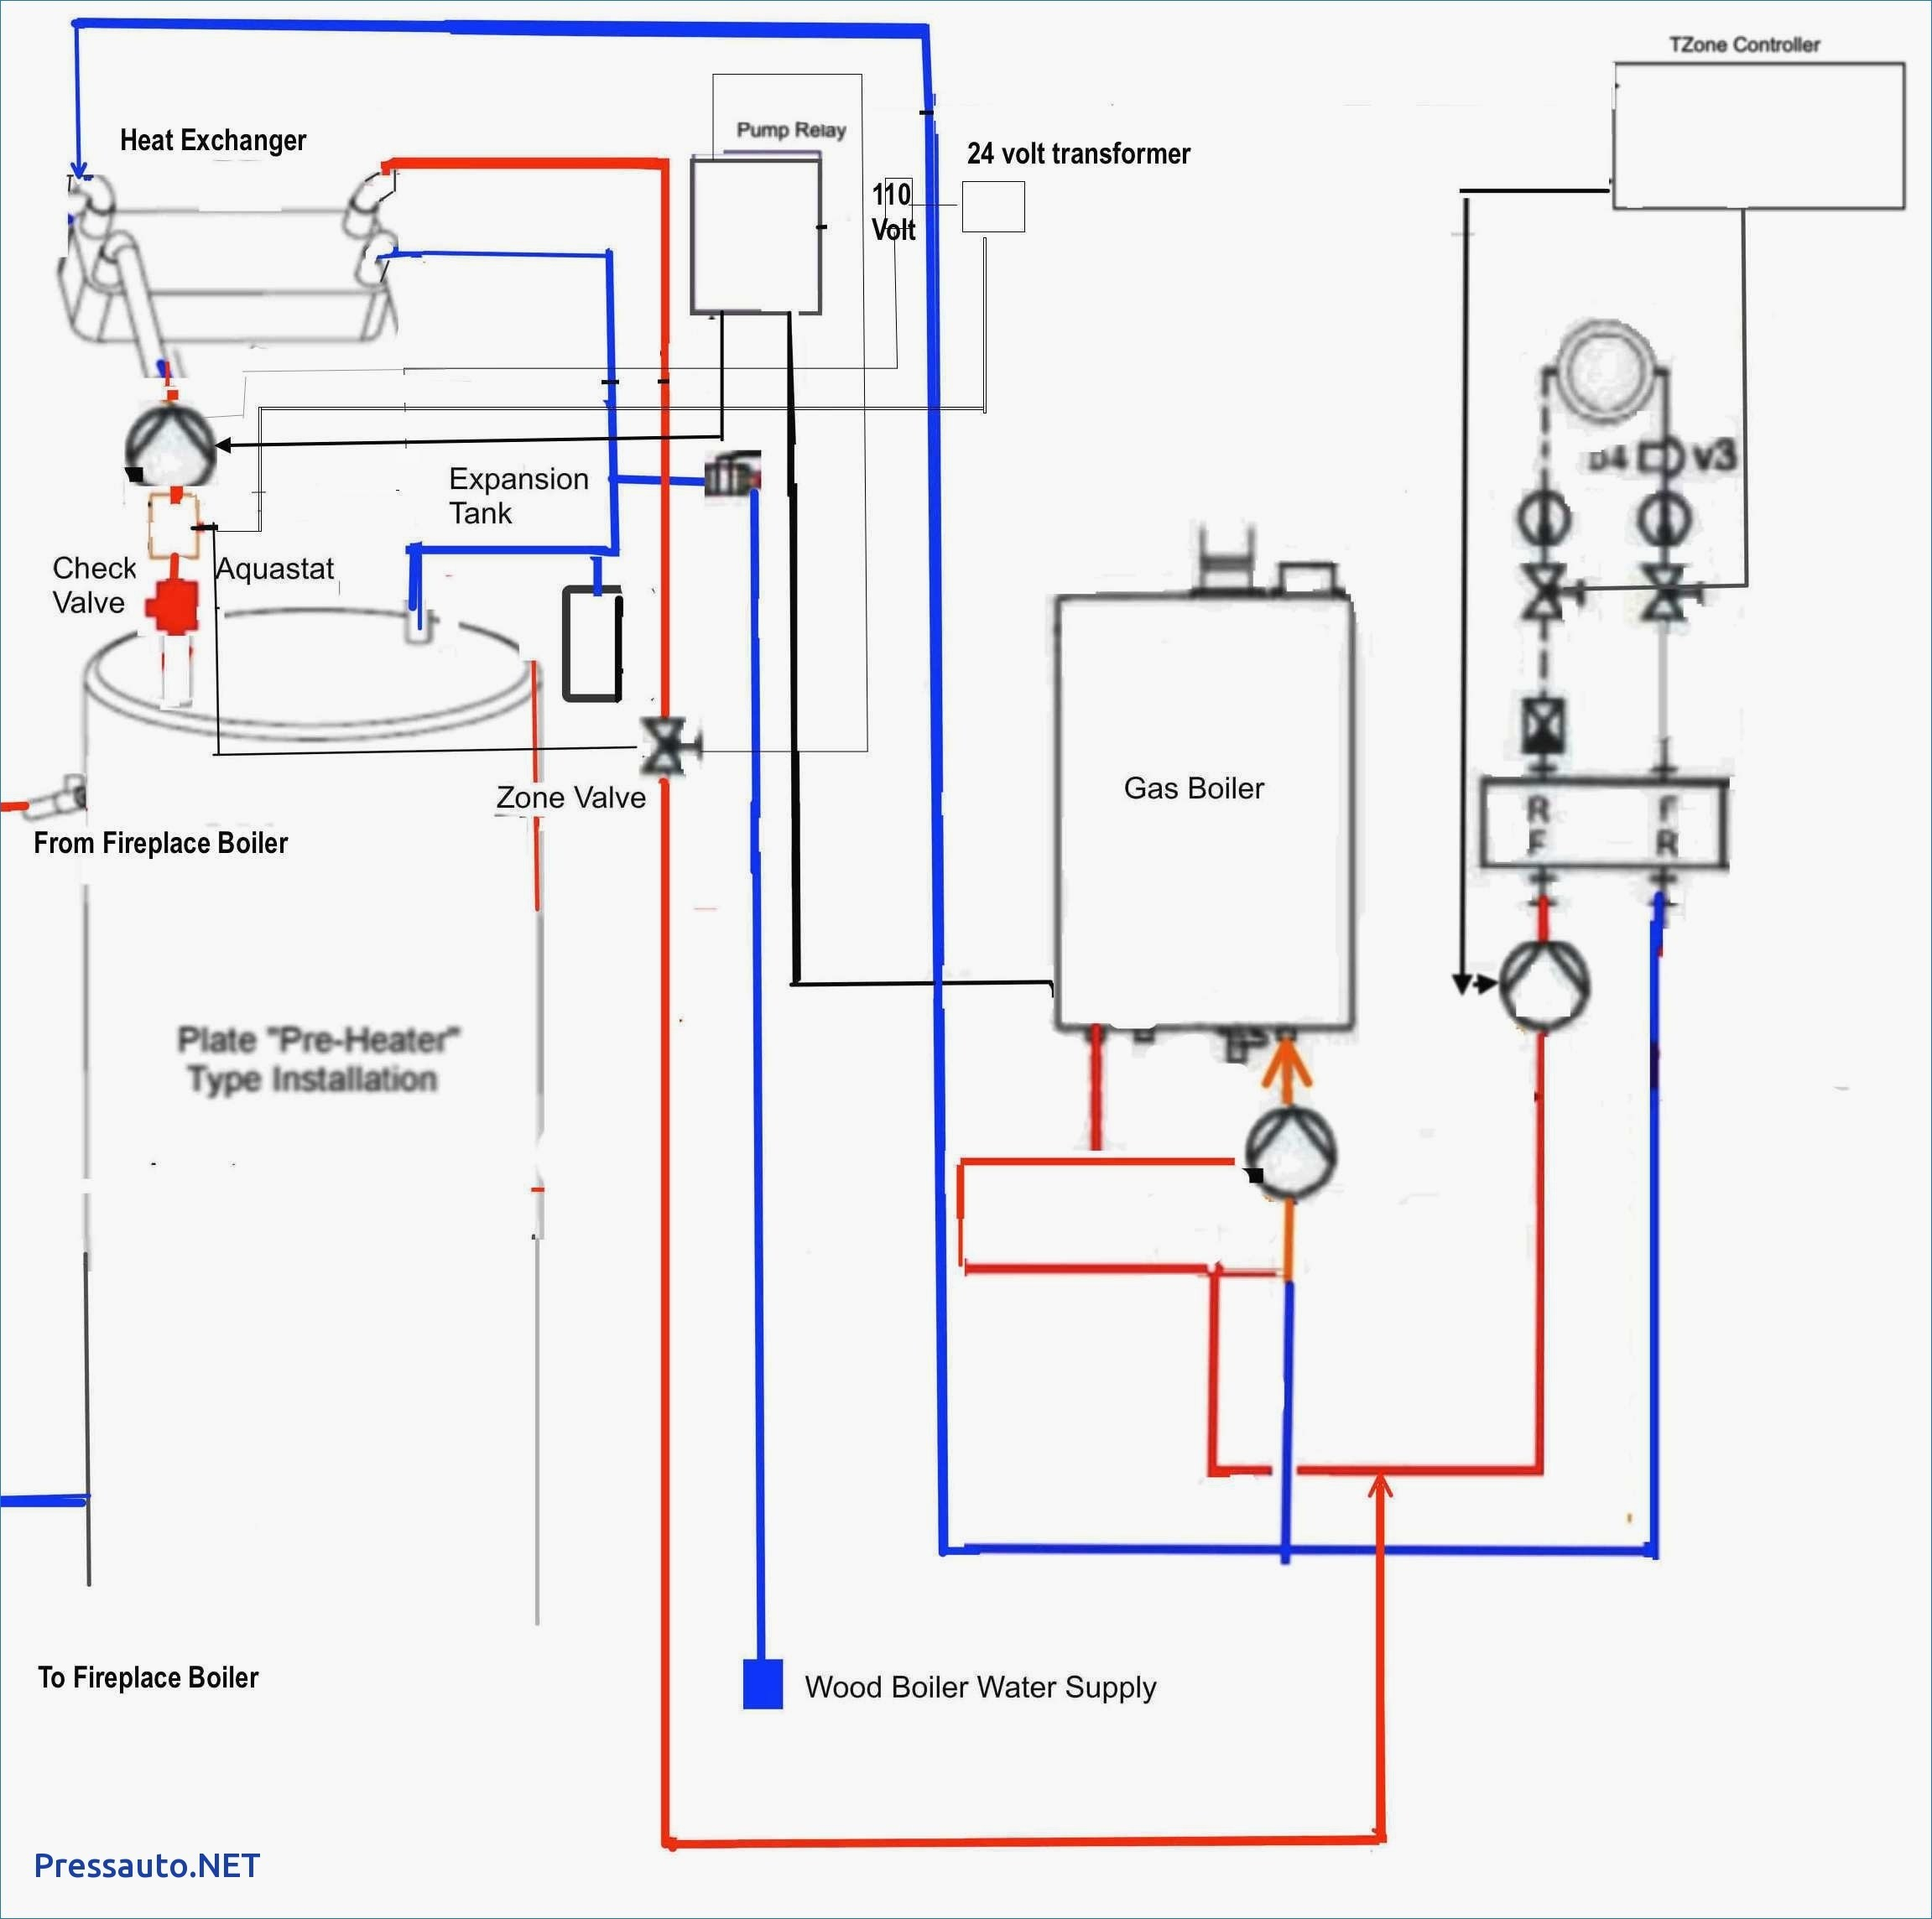 Wiring Diagram For 24 Volt Transformer - Trusted Wiring Diagram Online - 24 Volt Transformer Wiring Diagram